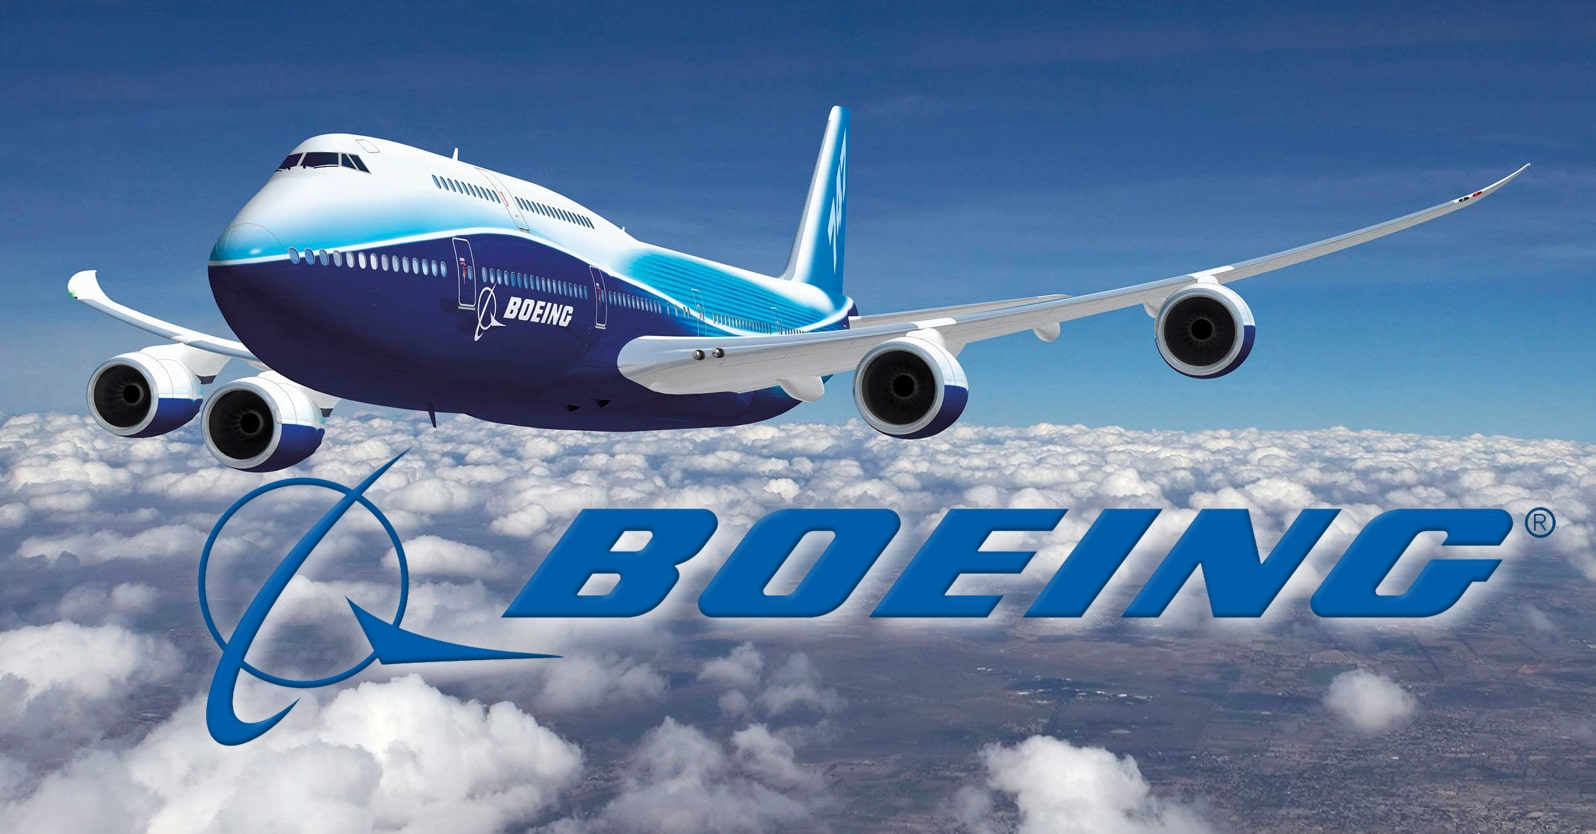 Boeing says production will remain suspended at Seattle factories until further notice | Invezz